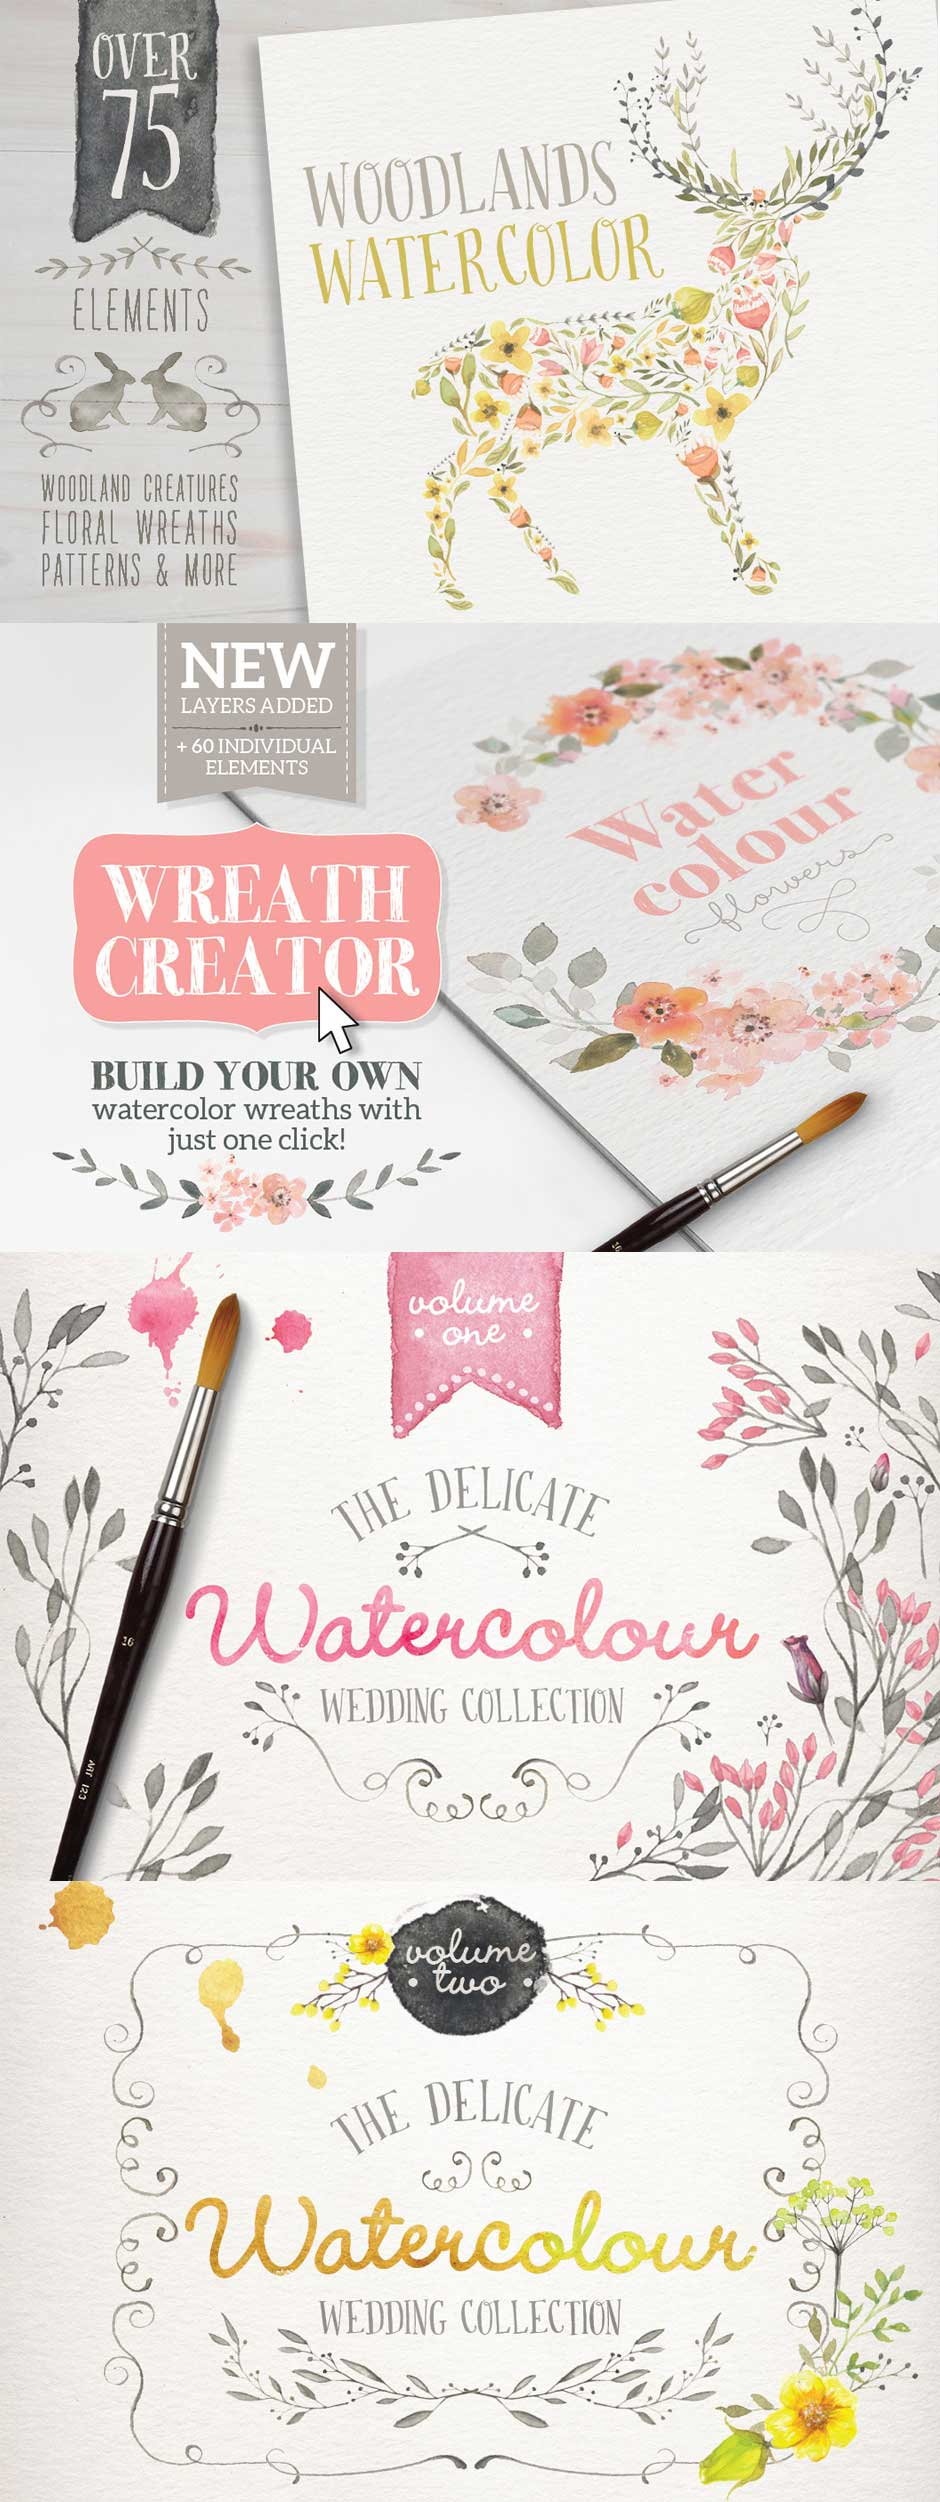 Watercolor Graphics.  Get them as part of the Amazing design bundle with 1000's of items for just $29!!